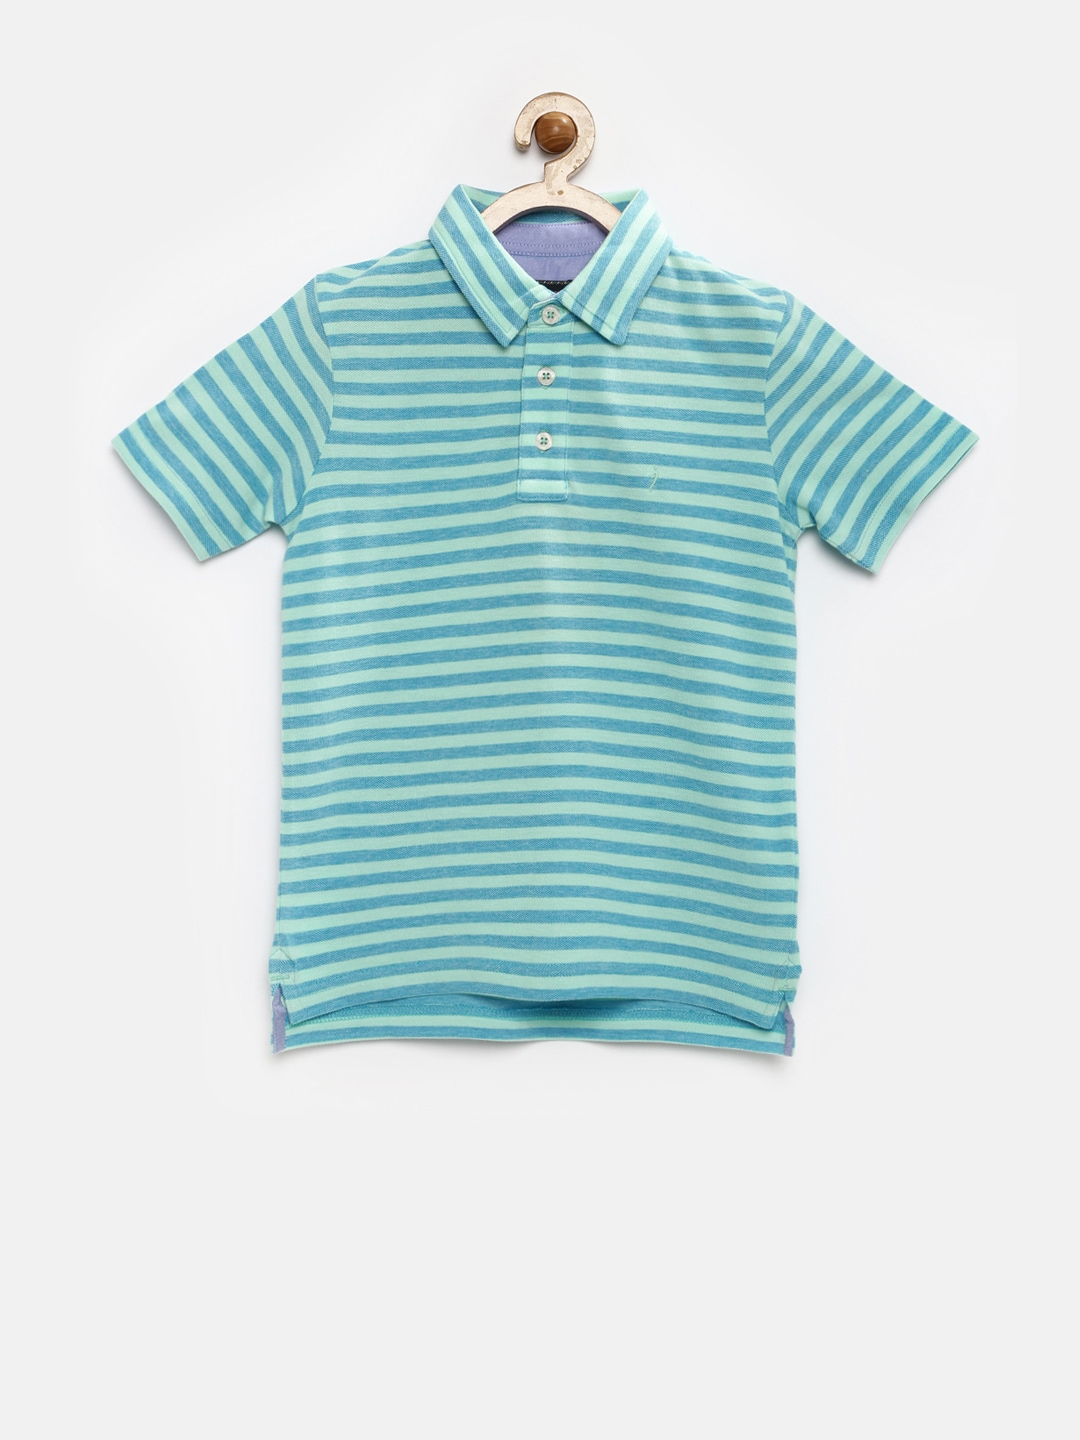 f6378734cc Indian terrain tbs16tsk154-sky Boys Blue And Green Striped Polo T Shirt-  Price in India